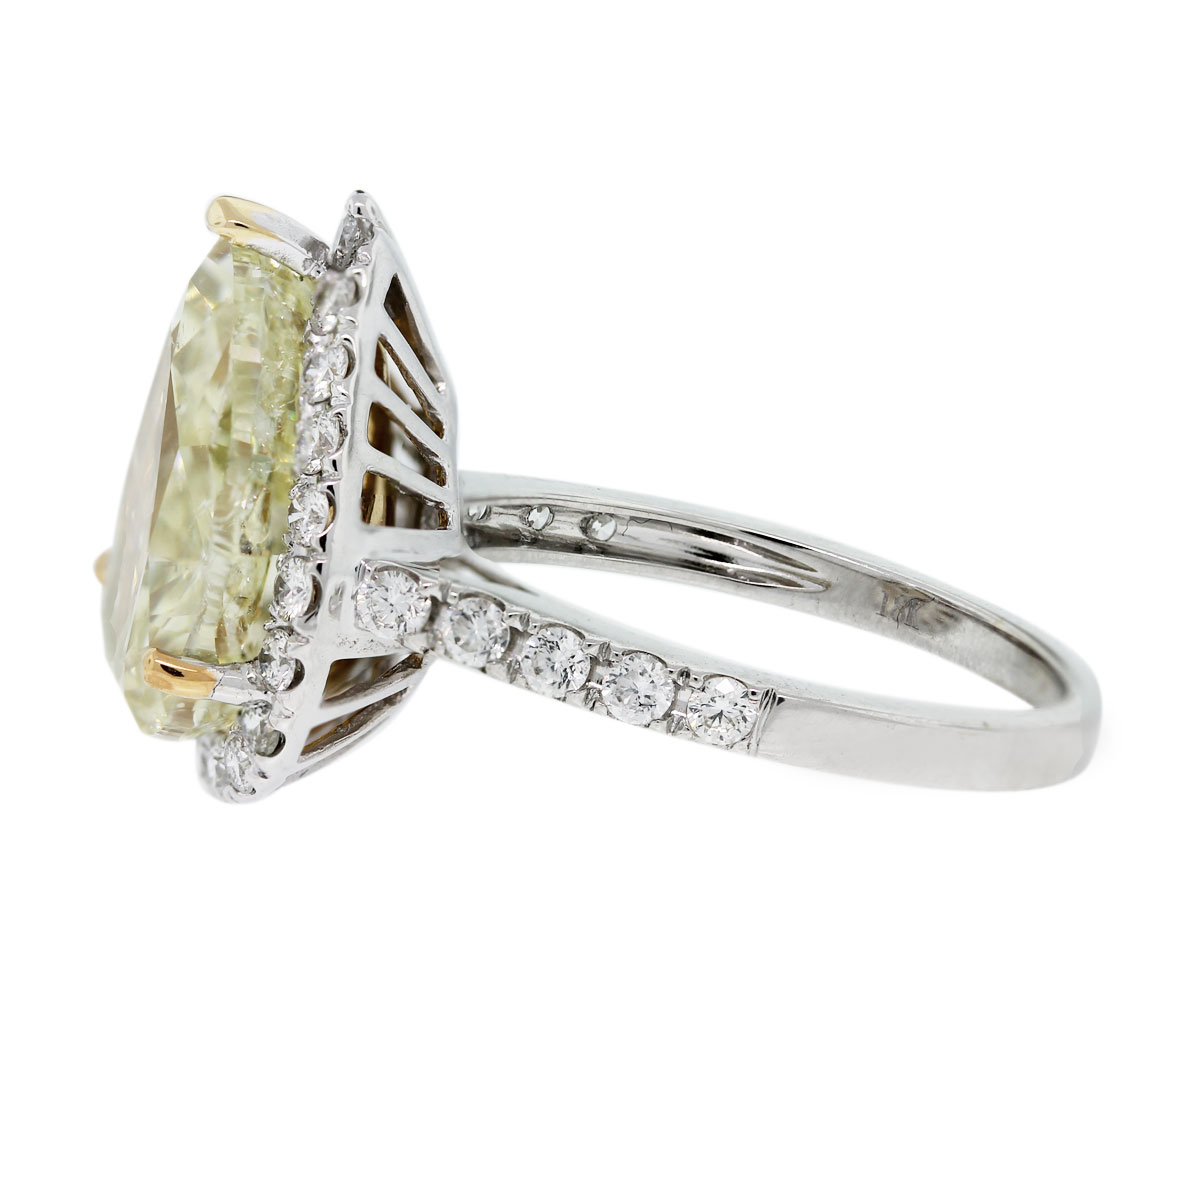 You'll love this 18k White Gold Pear Shape Fancy Yellow Diamond Halo Engagement Ring